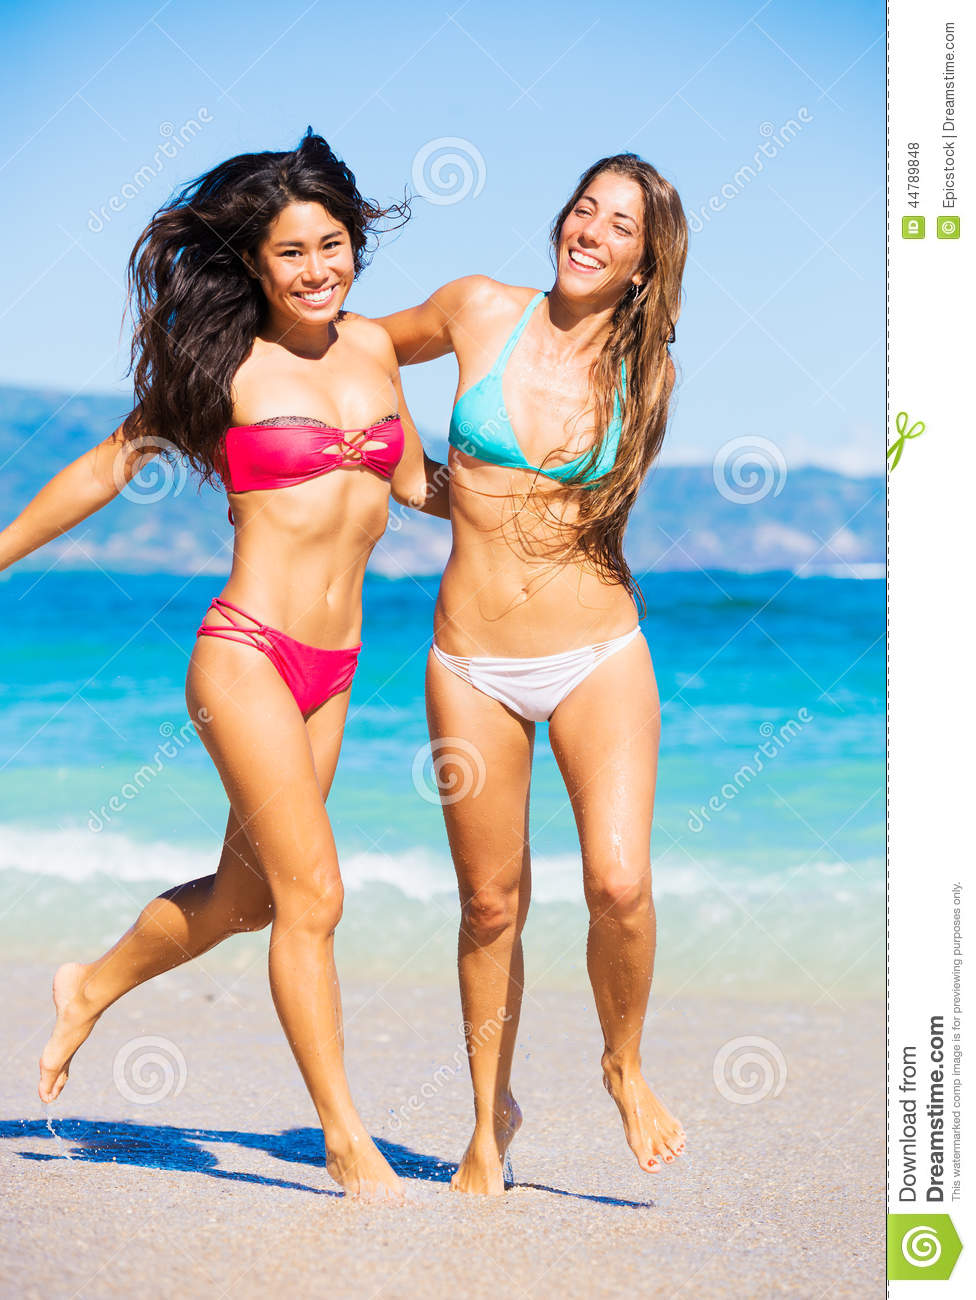 Beach Young girls on the